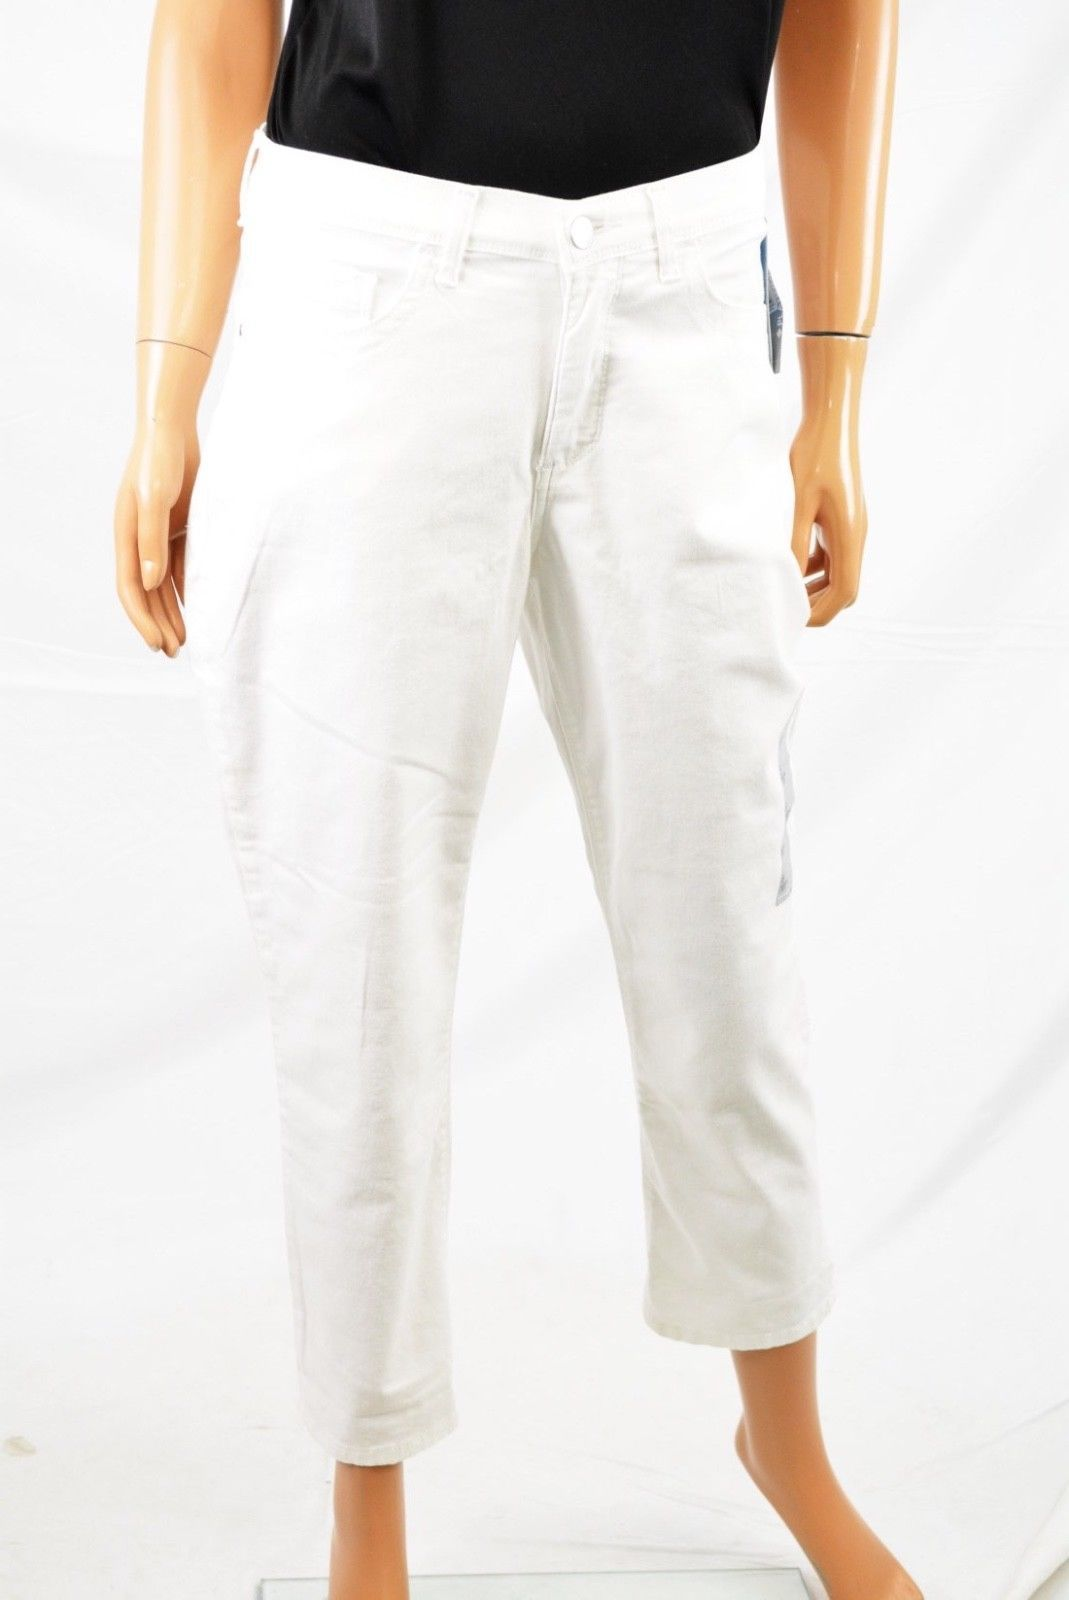 lee lee women s stretch white easy fit mid rise cameron capri cropped jeans 8 m walmart com